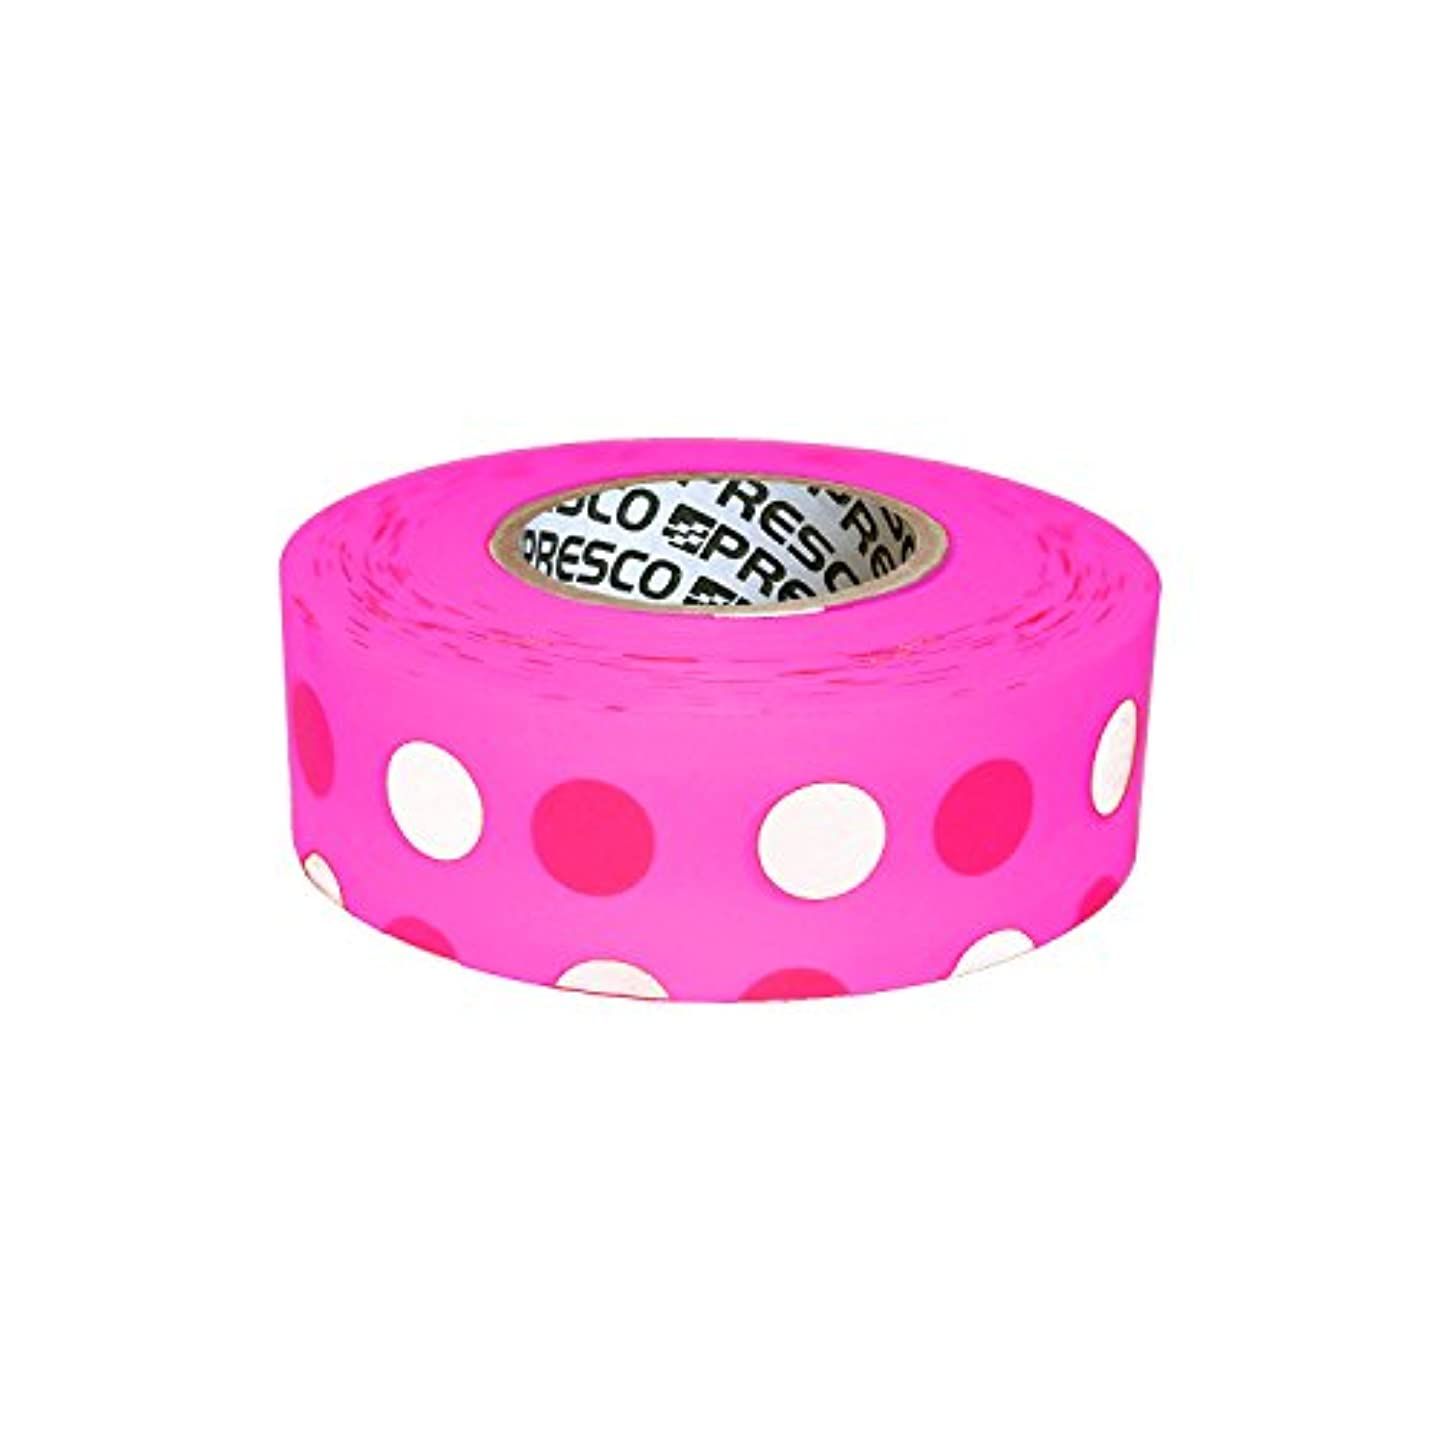 Presco Polka Dot Patterned Roll Flagging Tape: 1-3/16 in. x 50 yds. (Neon Pink and Light Pink Polka Dot)